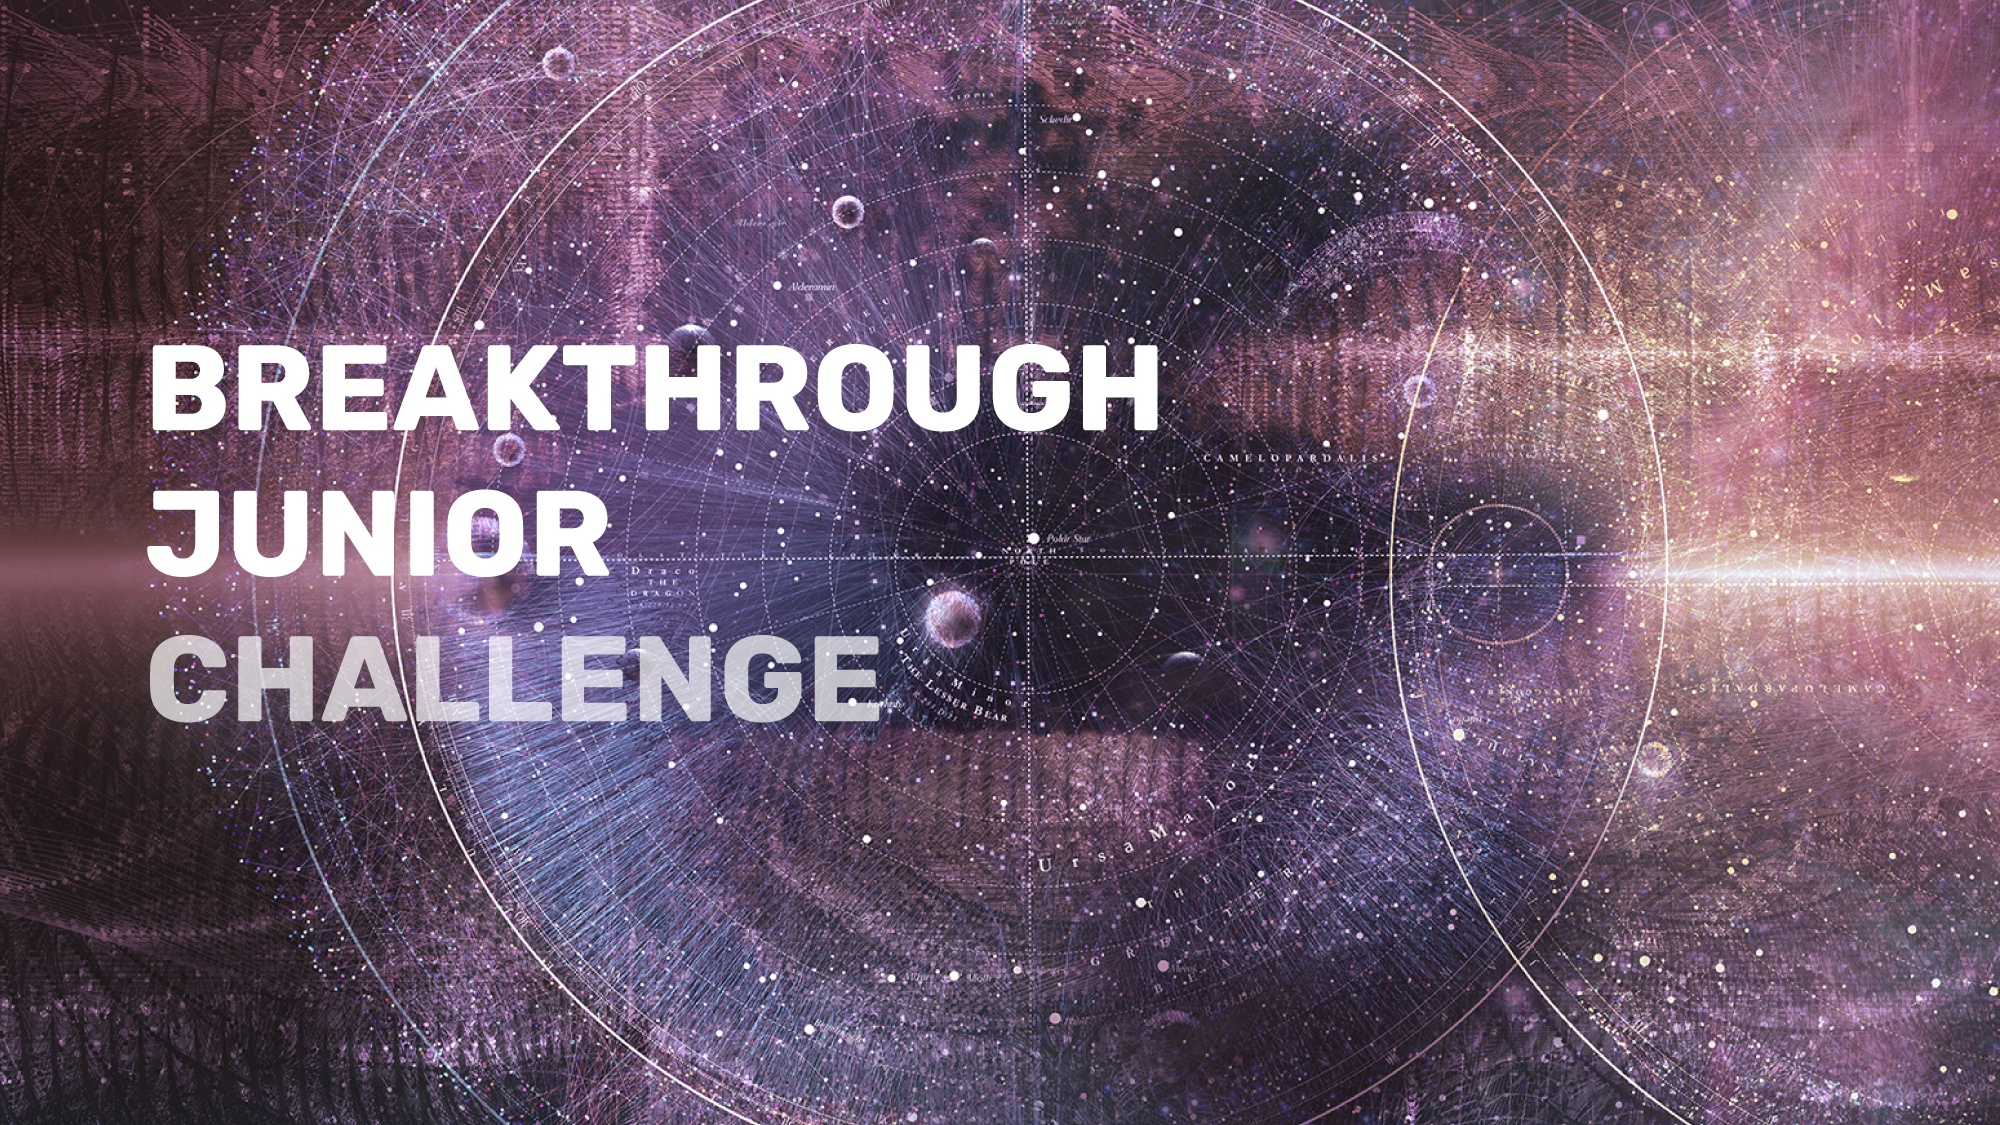 Summer 2018 Brings The Annual Breakthrough Junior Challenge To EXPLO